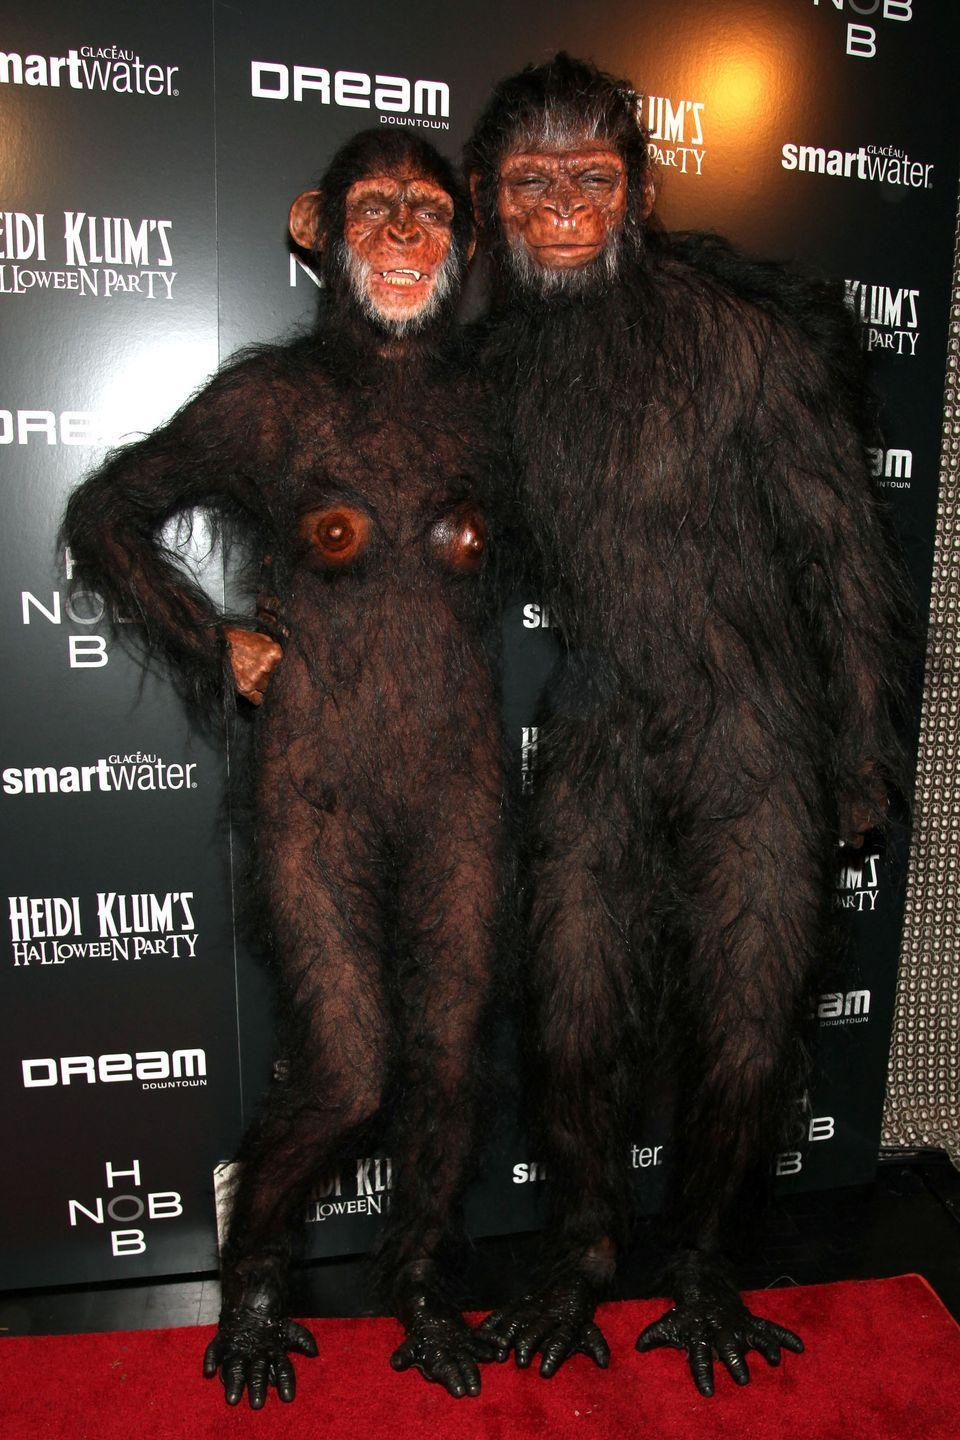 <p>A few days later, Heidi and Seal (oh, we miss them so) did a complete 180 in this head-to-toe hairy costume. They leaned on prosthetics for a life-like ape look.</p>